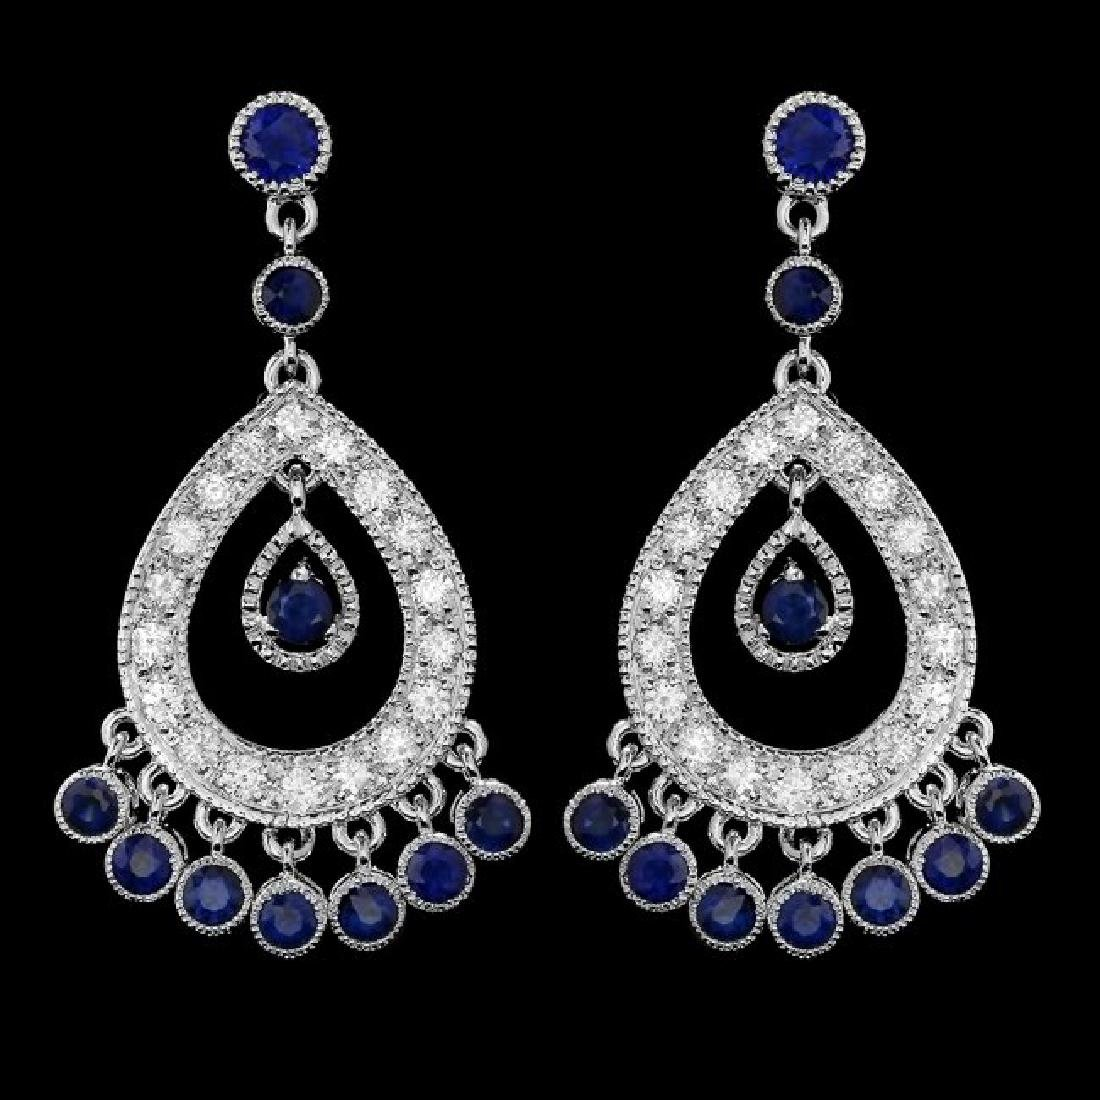 14k Gold 3.00ct Sapphire 1.50ct Diamond Earrings